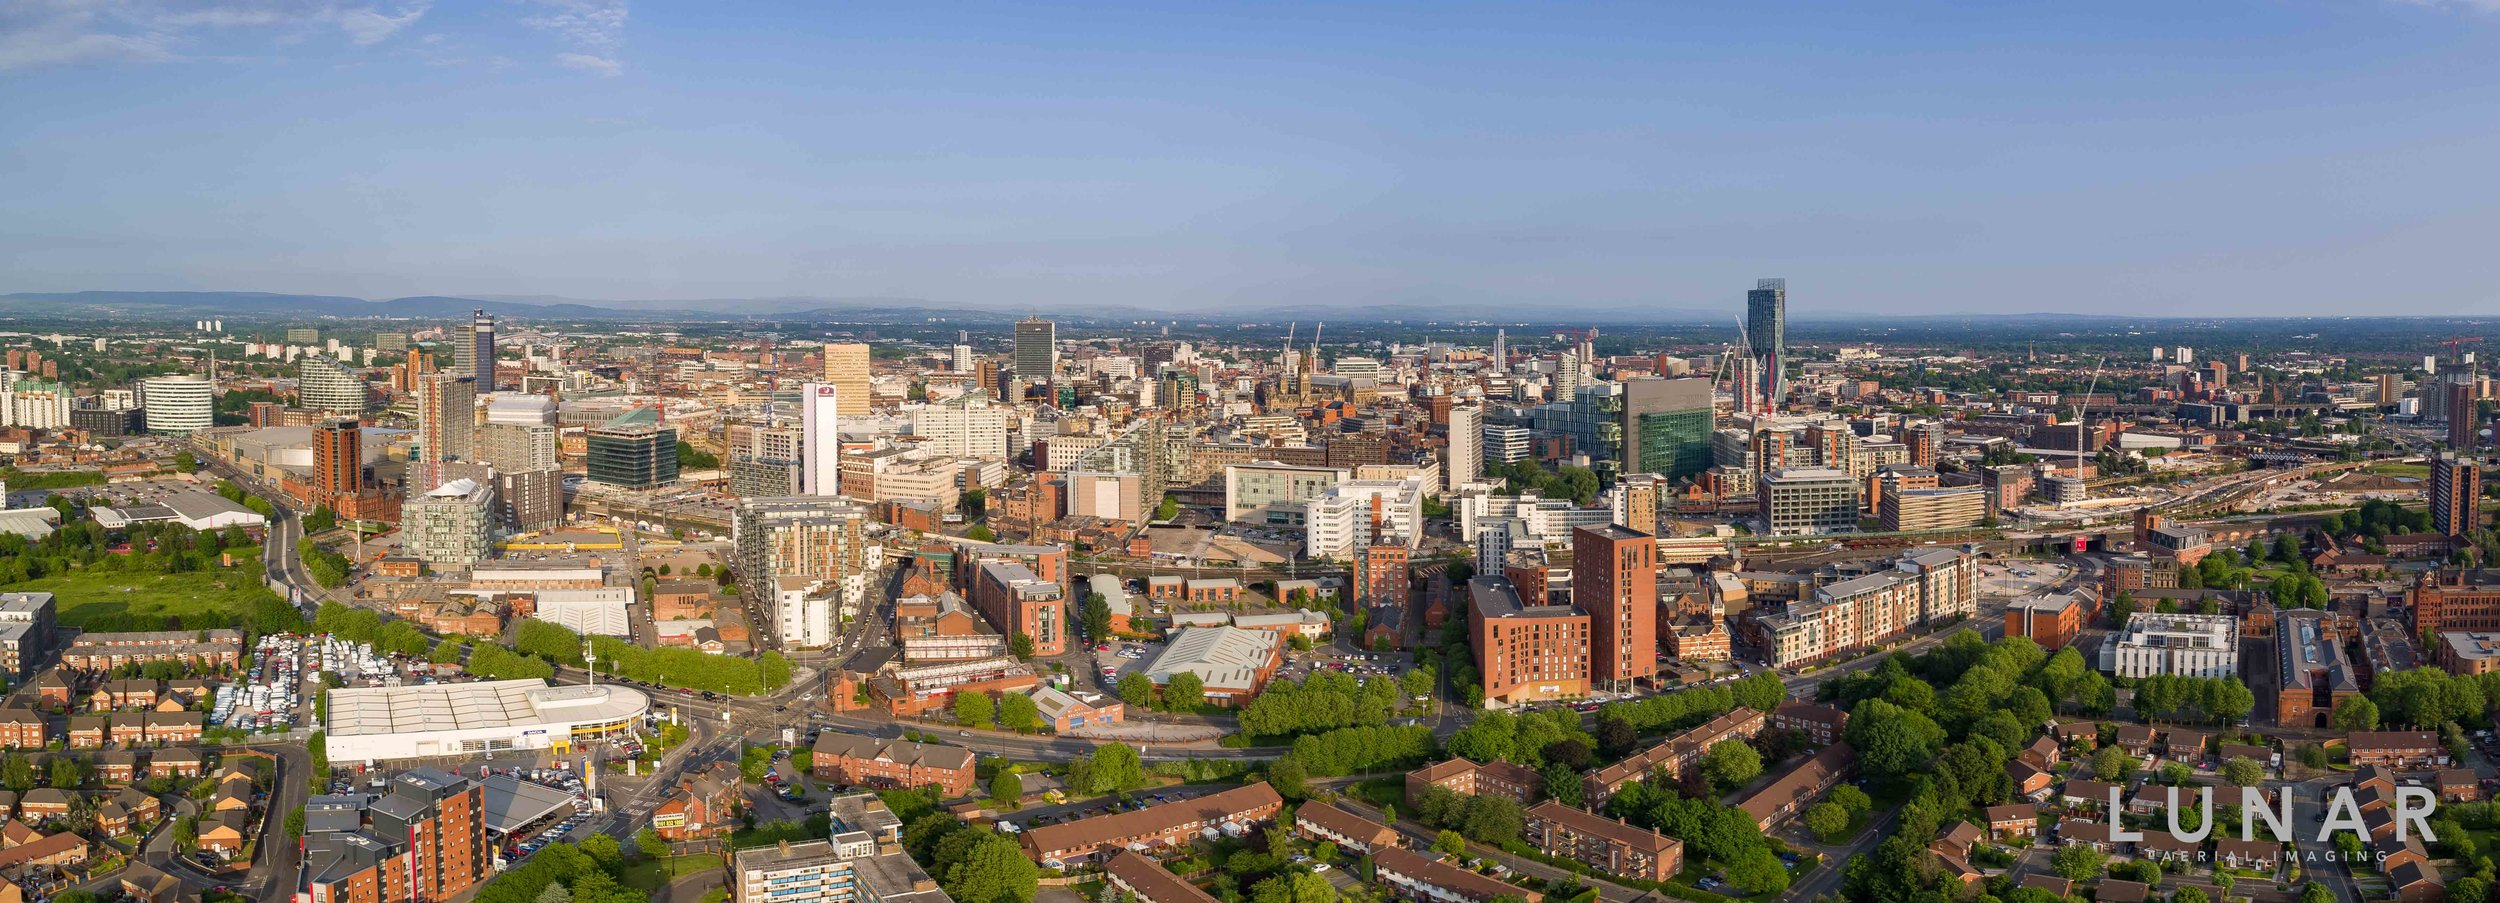 Panoramic aerial view of Manchester